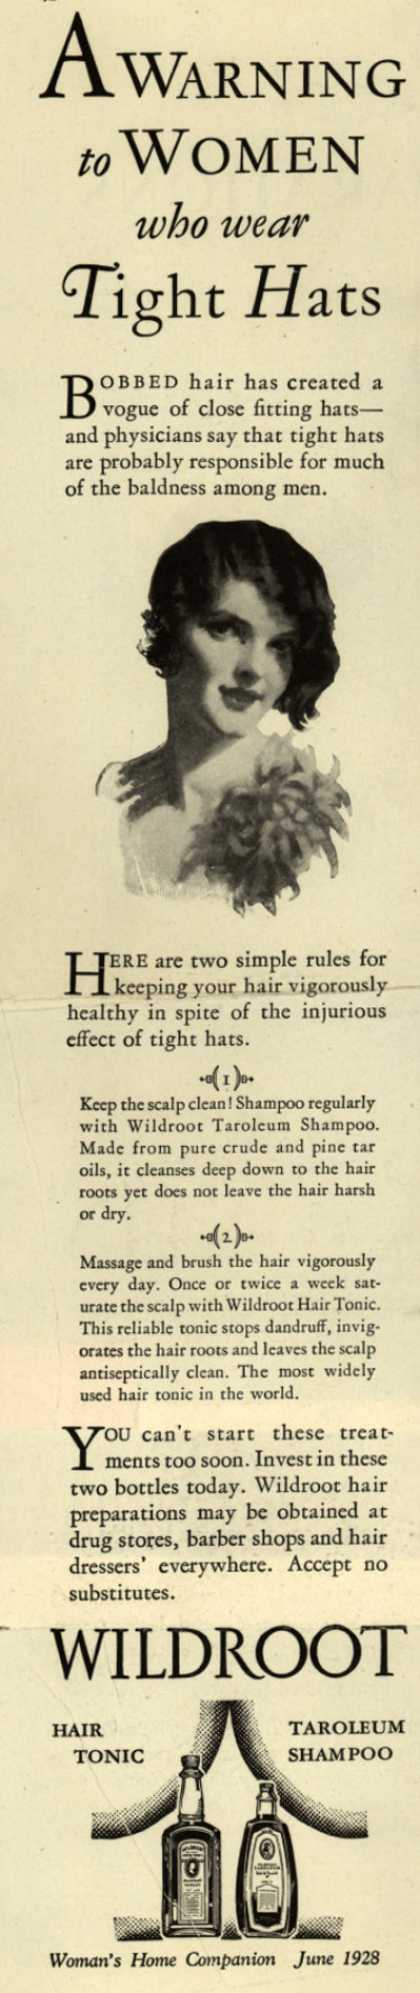 Wildroot Company's Wildroot Hair Preparations – A Warning to Women who wear Tight Hats (1928)